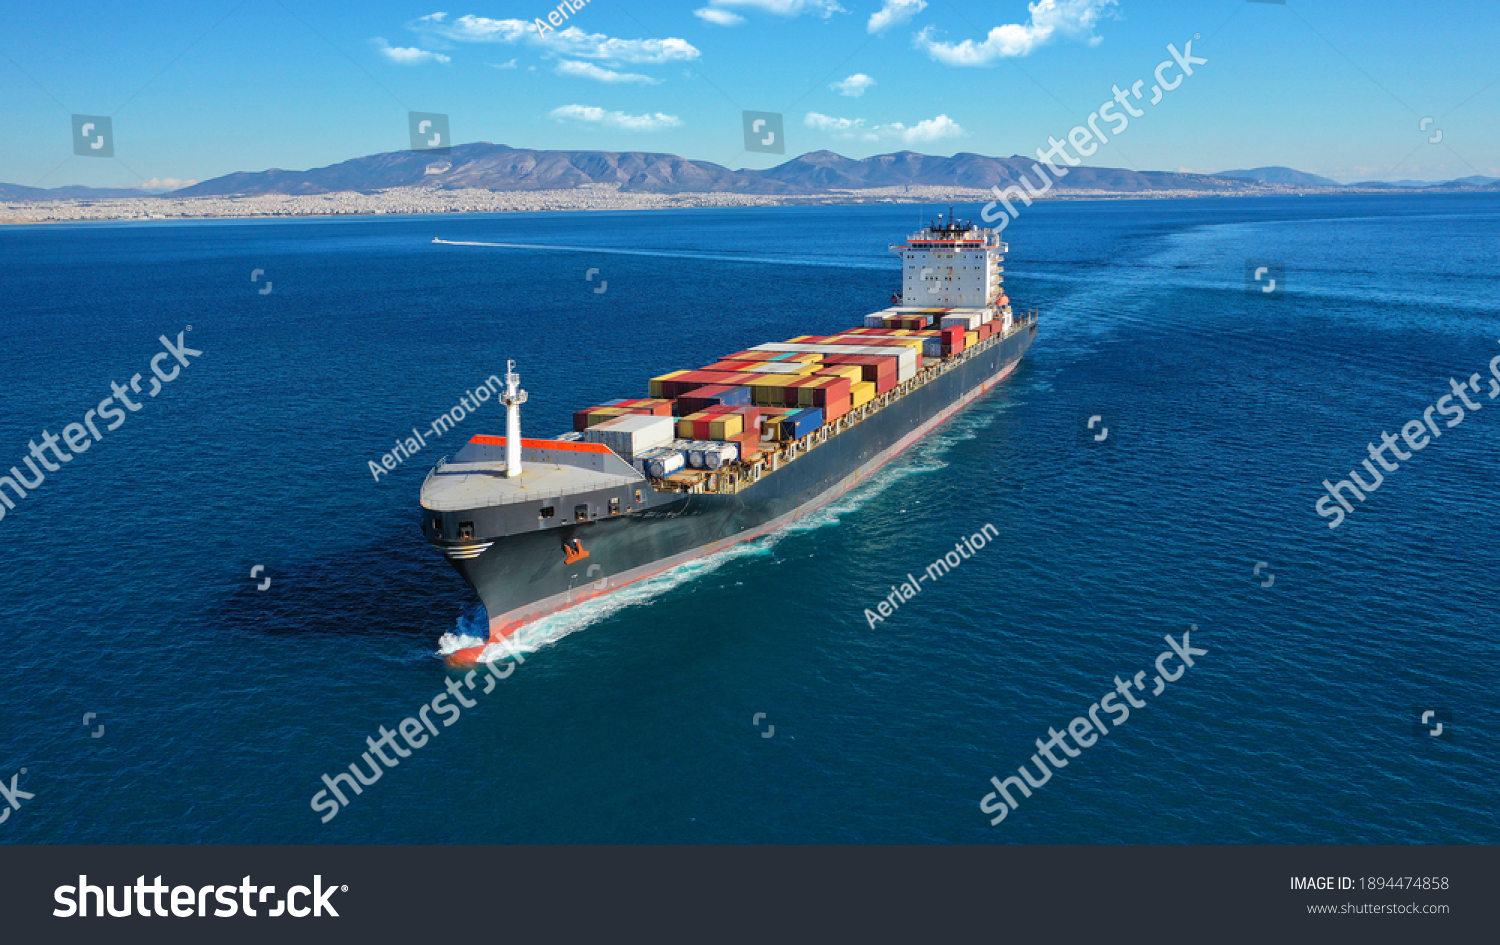 Aerial drone photo of industrial colourful vessel carrying heavy truck size containers cruising the Aegean deep blue sea #1894474858